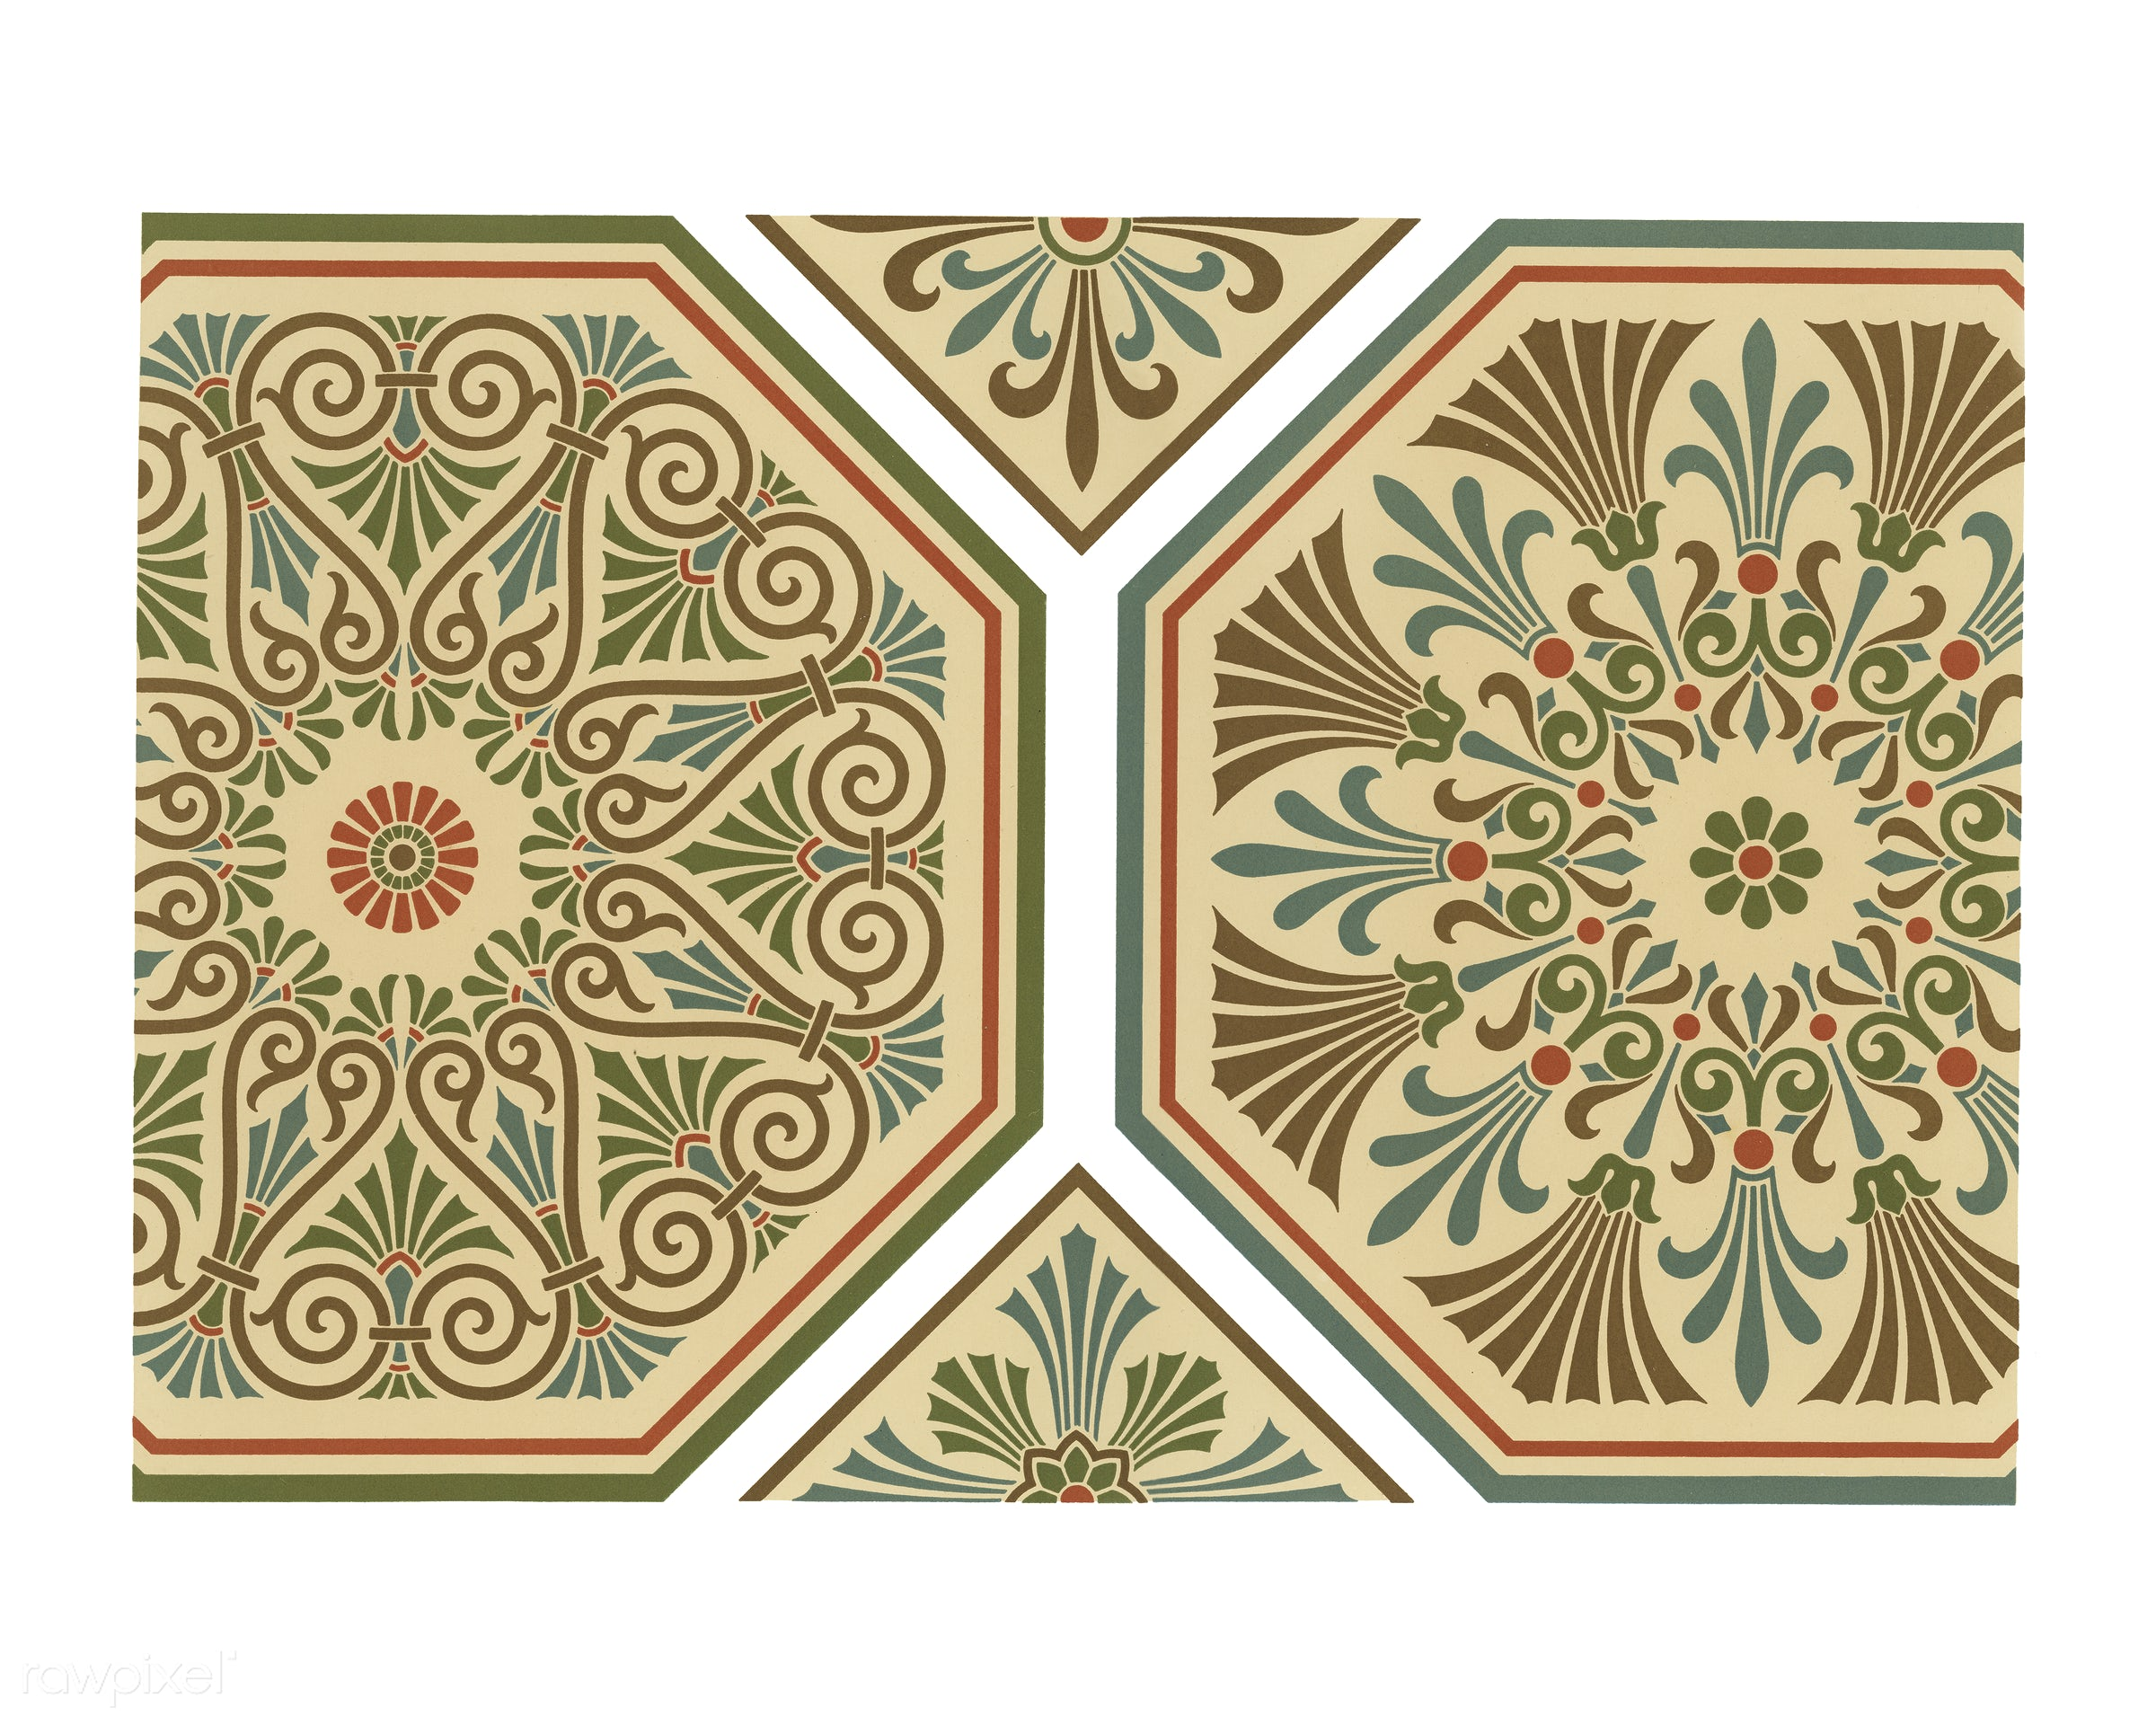 Renaissance pattern from The Practical Decorator and Ornamentist (1892) by G.A Audsley and M.A. Audsley. Digitally enhanced...